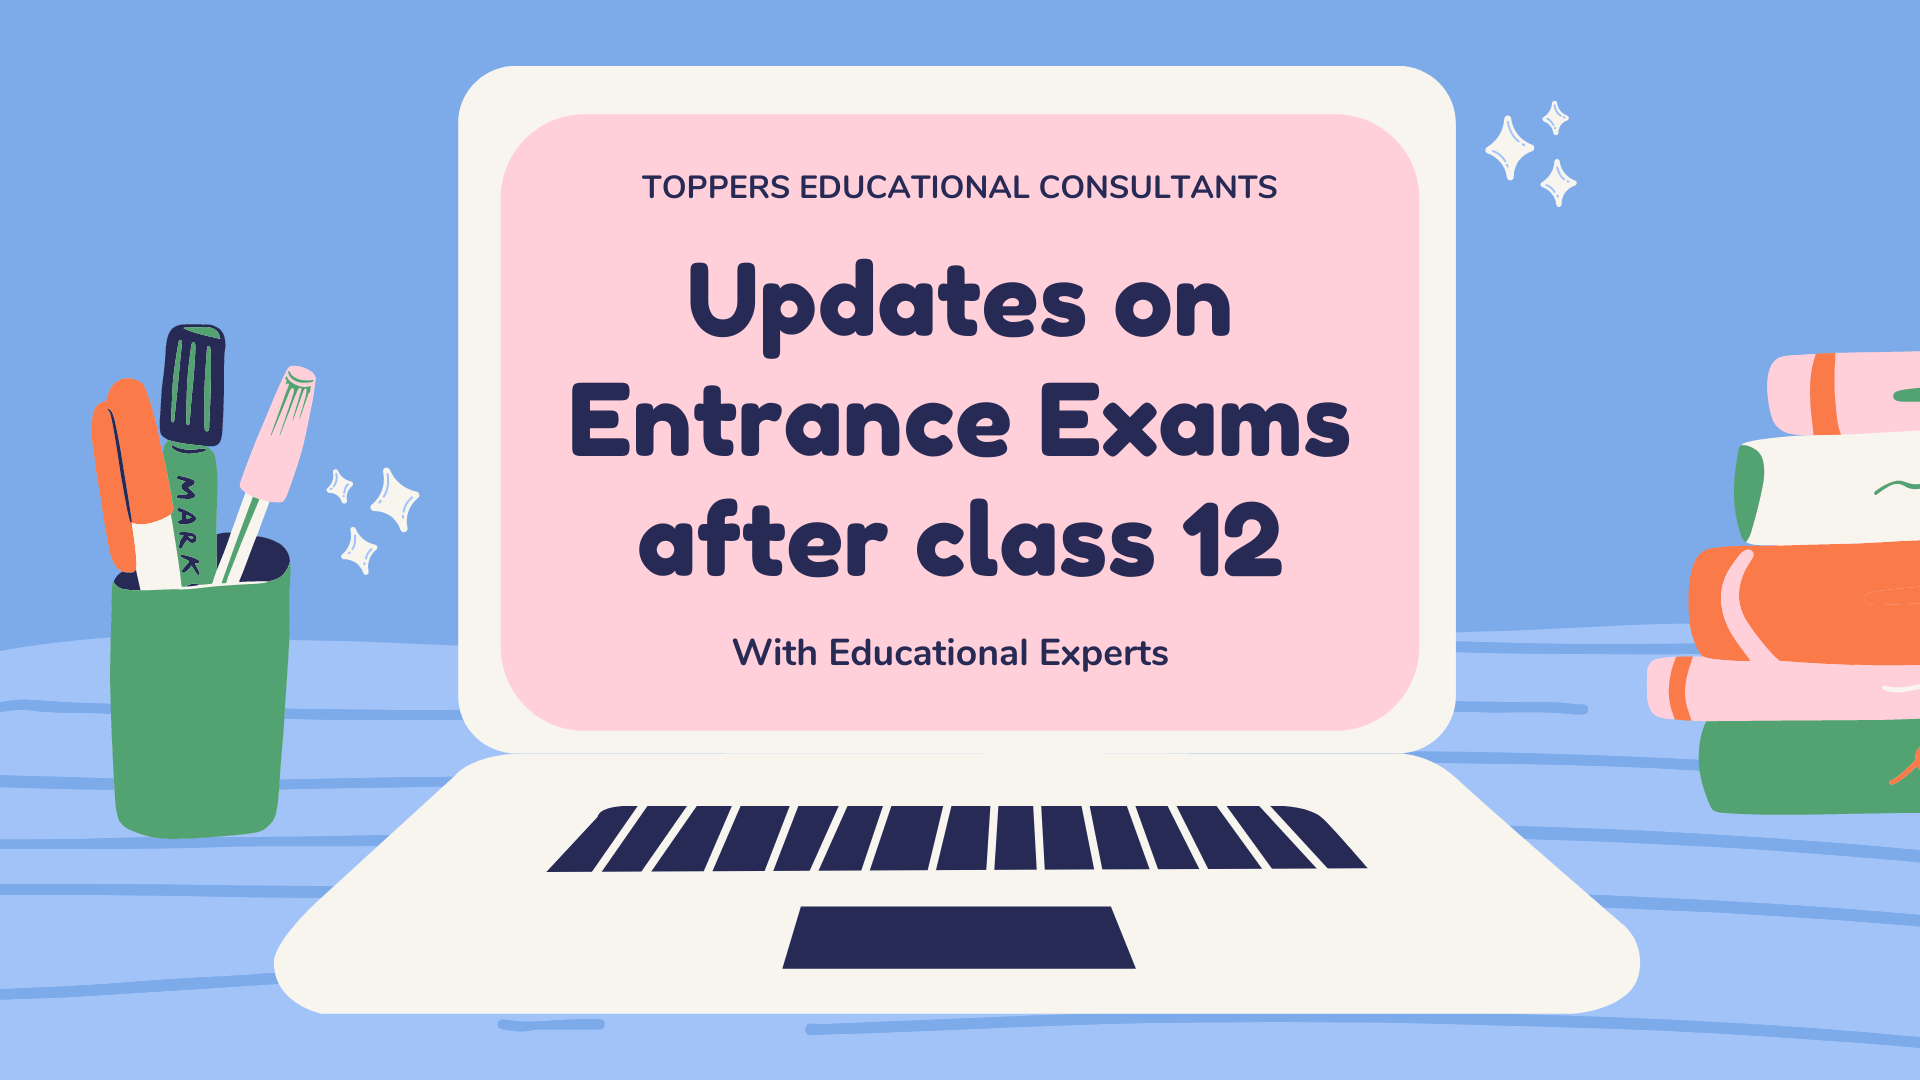 Updates on Entrance Exams after class 12